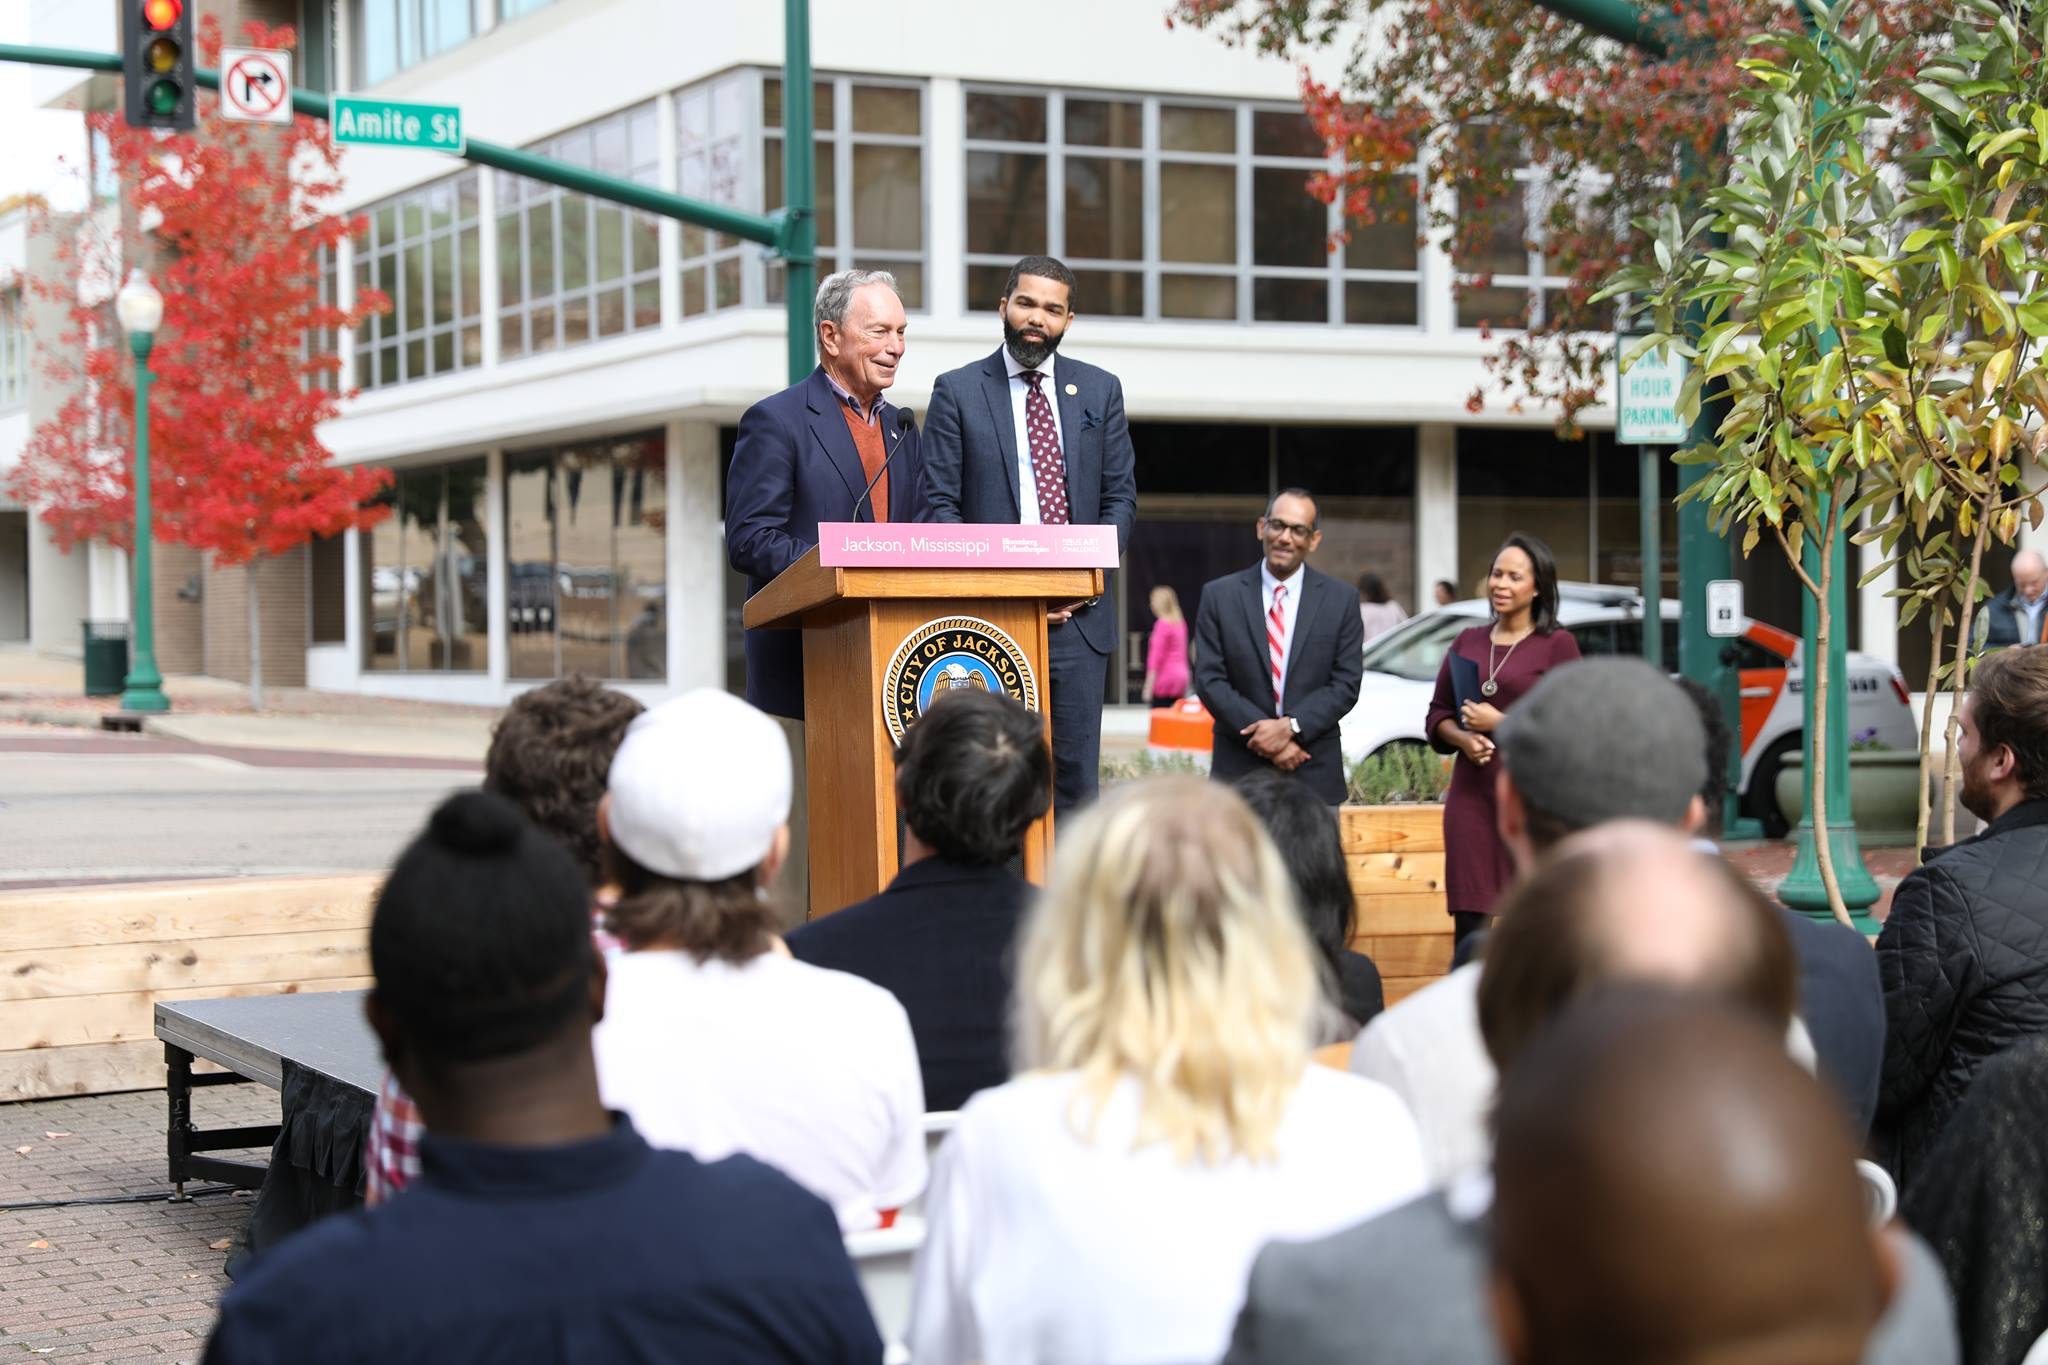 Fertile Ground Announcement with Mayor Chokwe Antar Lumumba and Michael Bloomberg